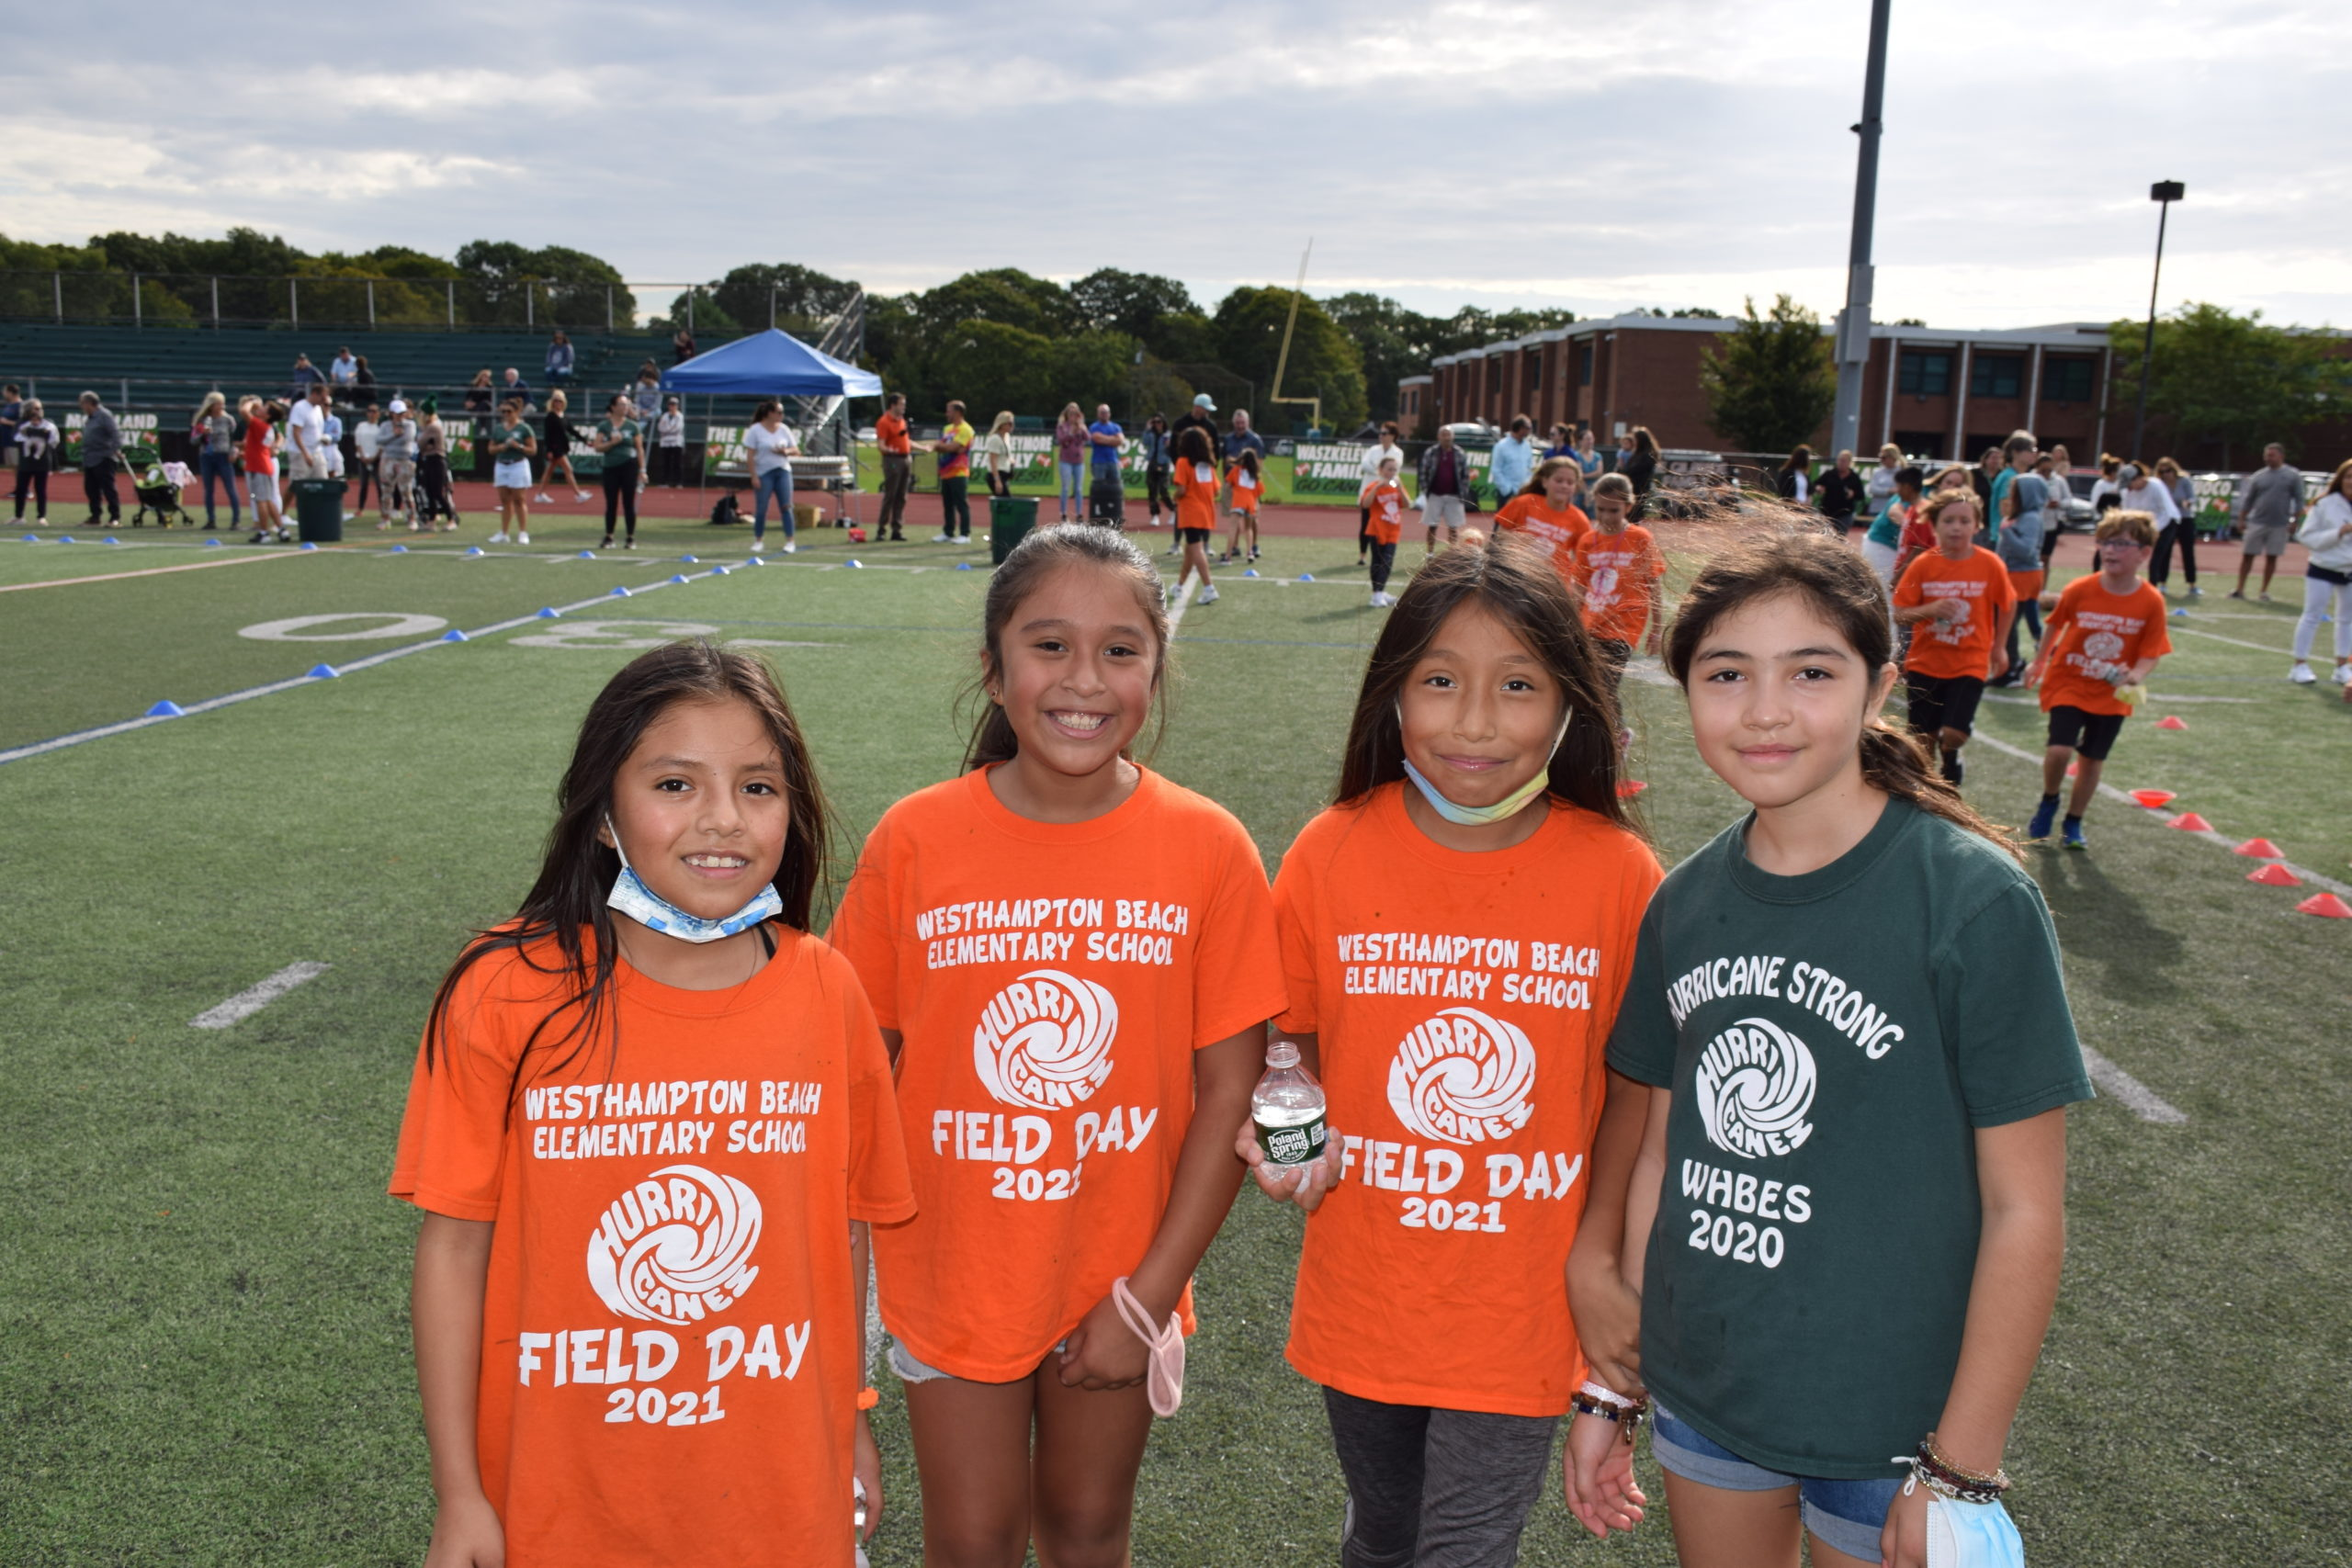 Westhampton Beach Elementary School students raised funds for school programs by participating in the annual Hurricane Fun Run on September 27.